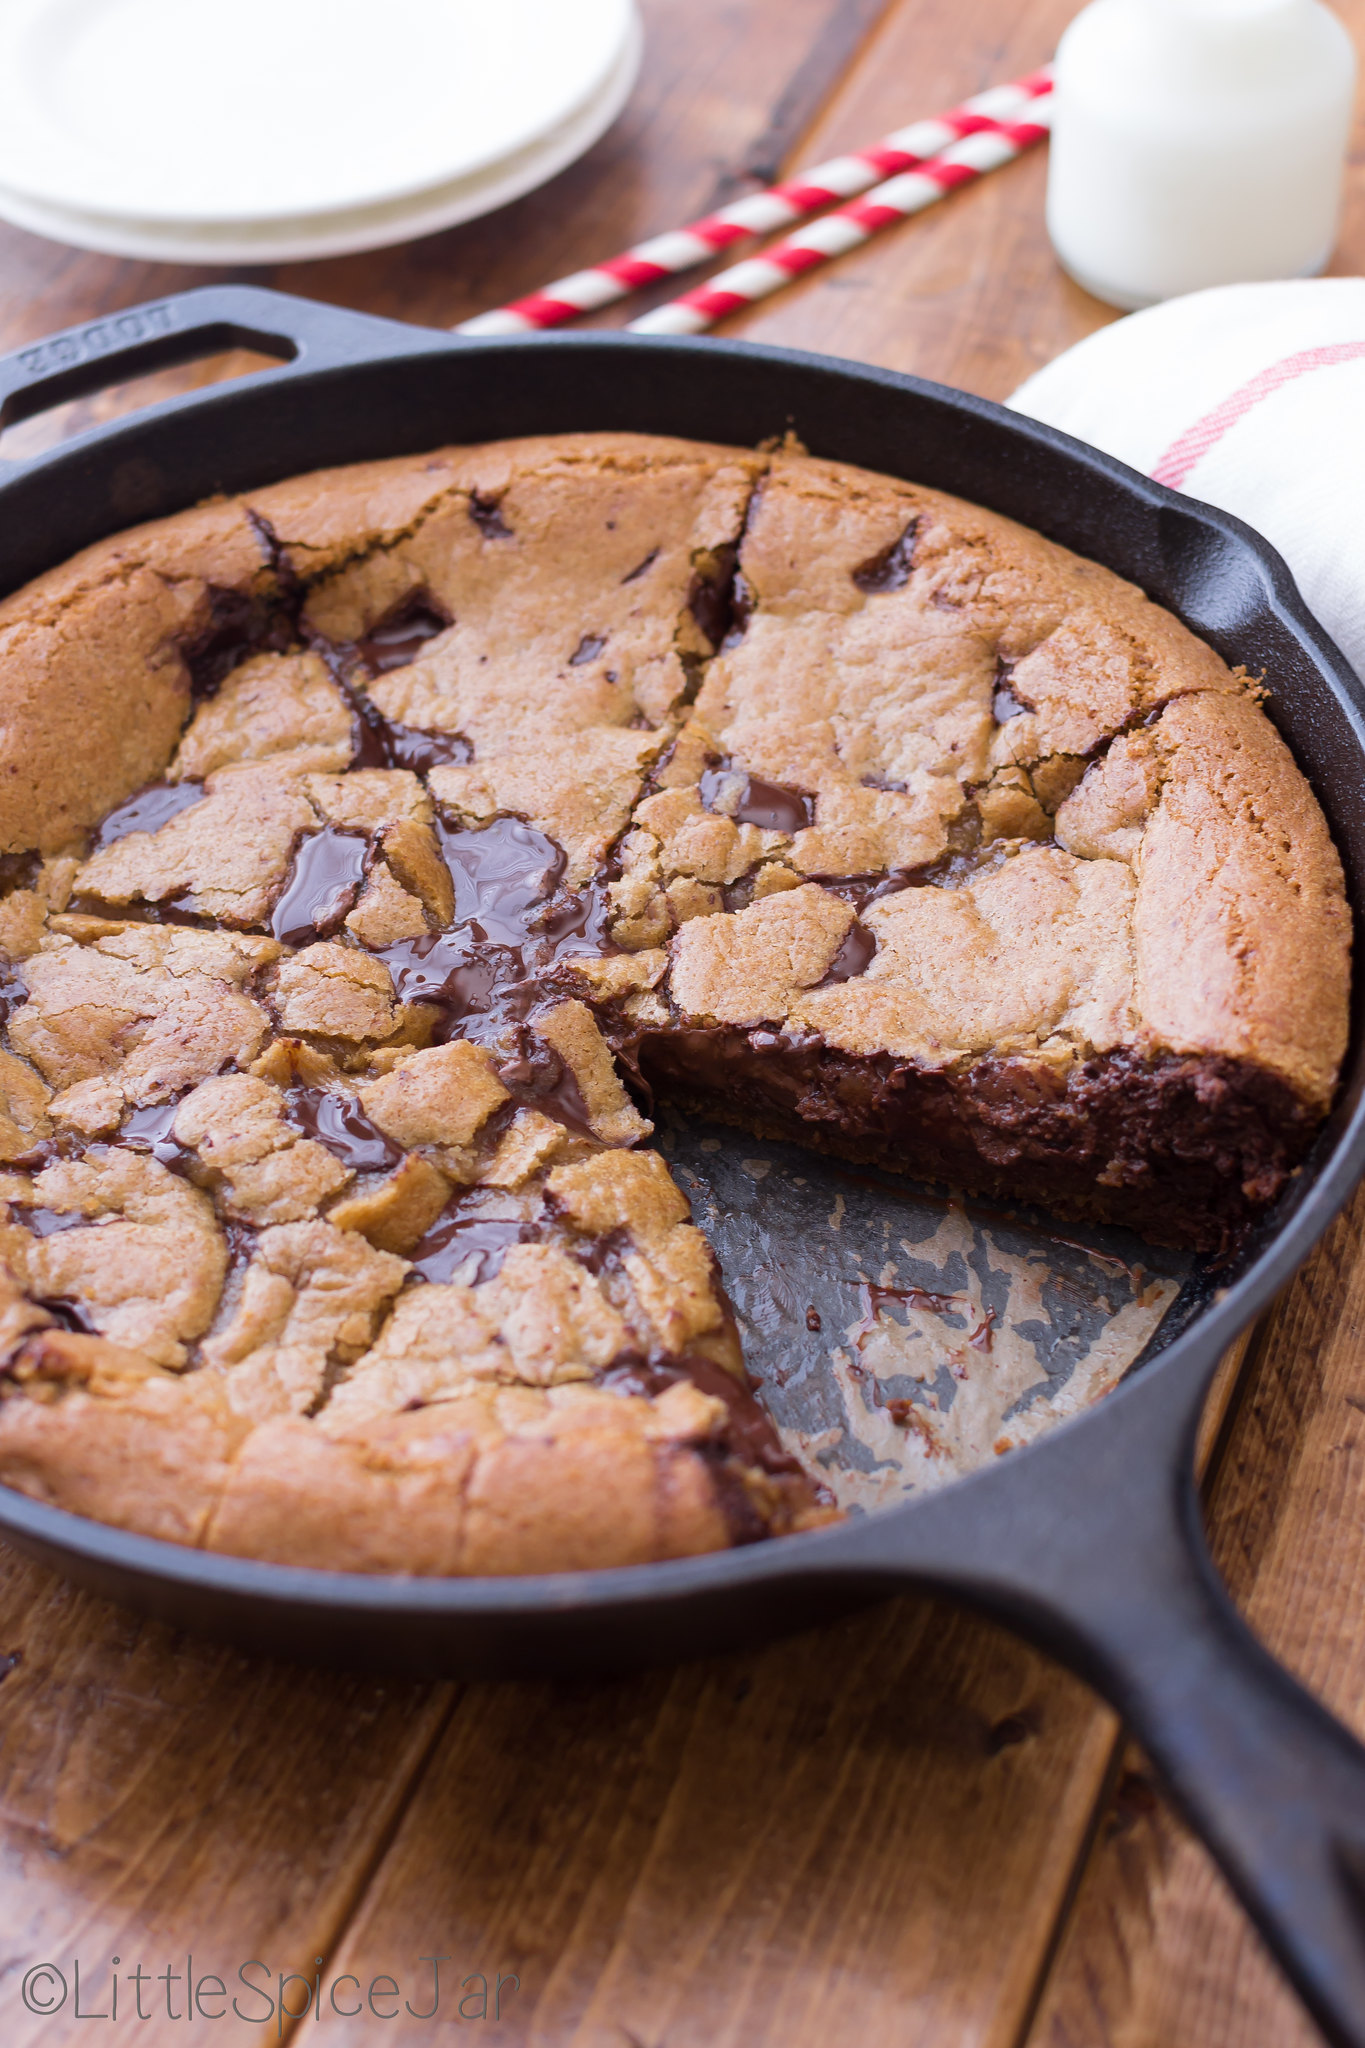 Deep Dish Chocolate Chip Cookie Stuffed with Nutella